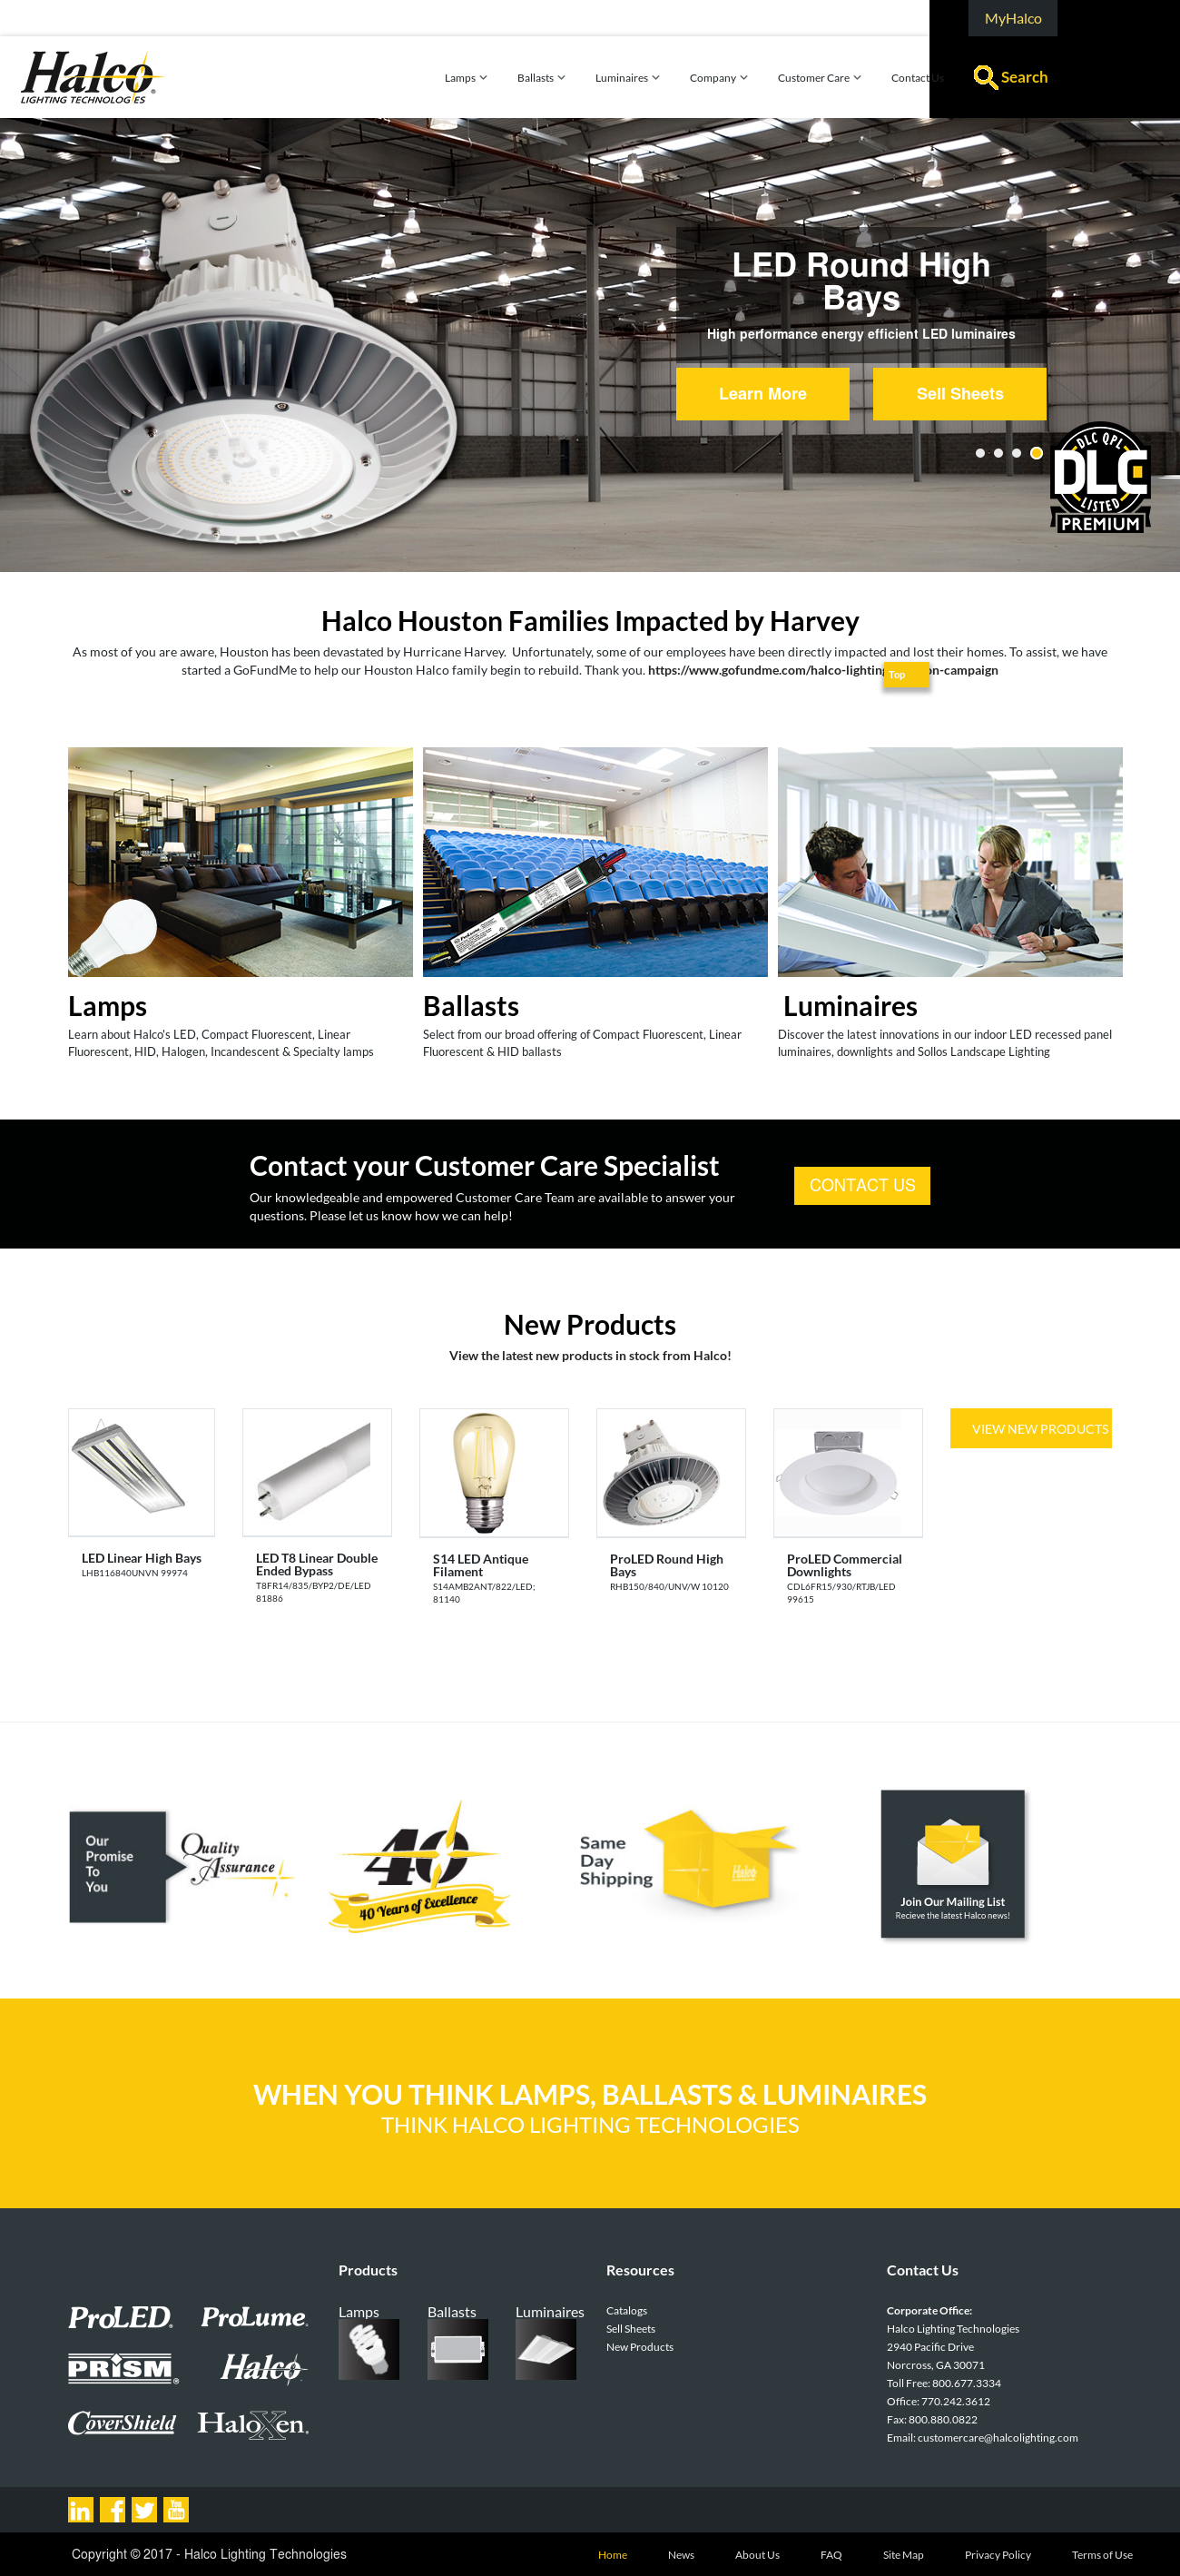 Superior Halco Lighting Technologies Website History